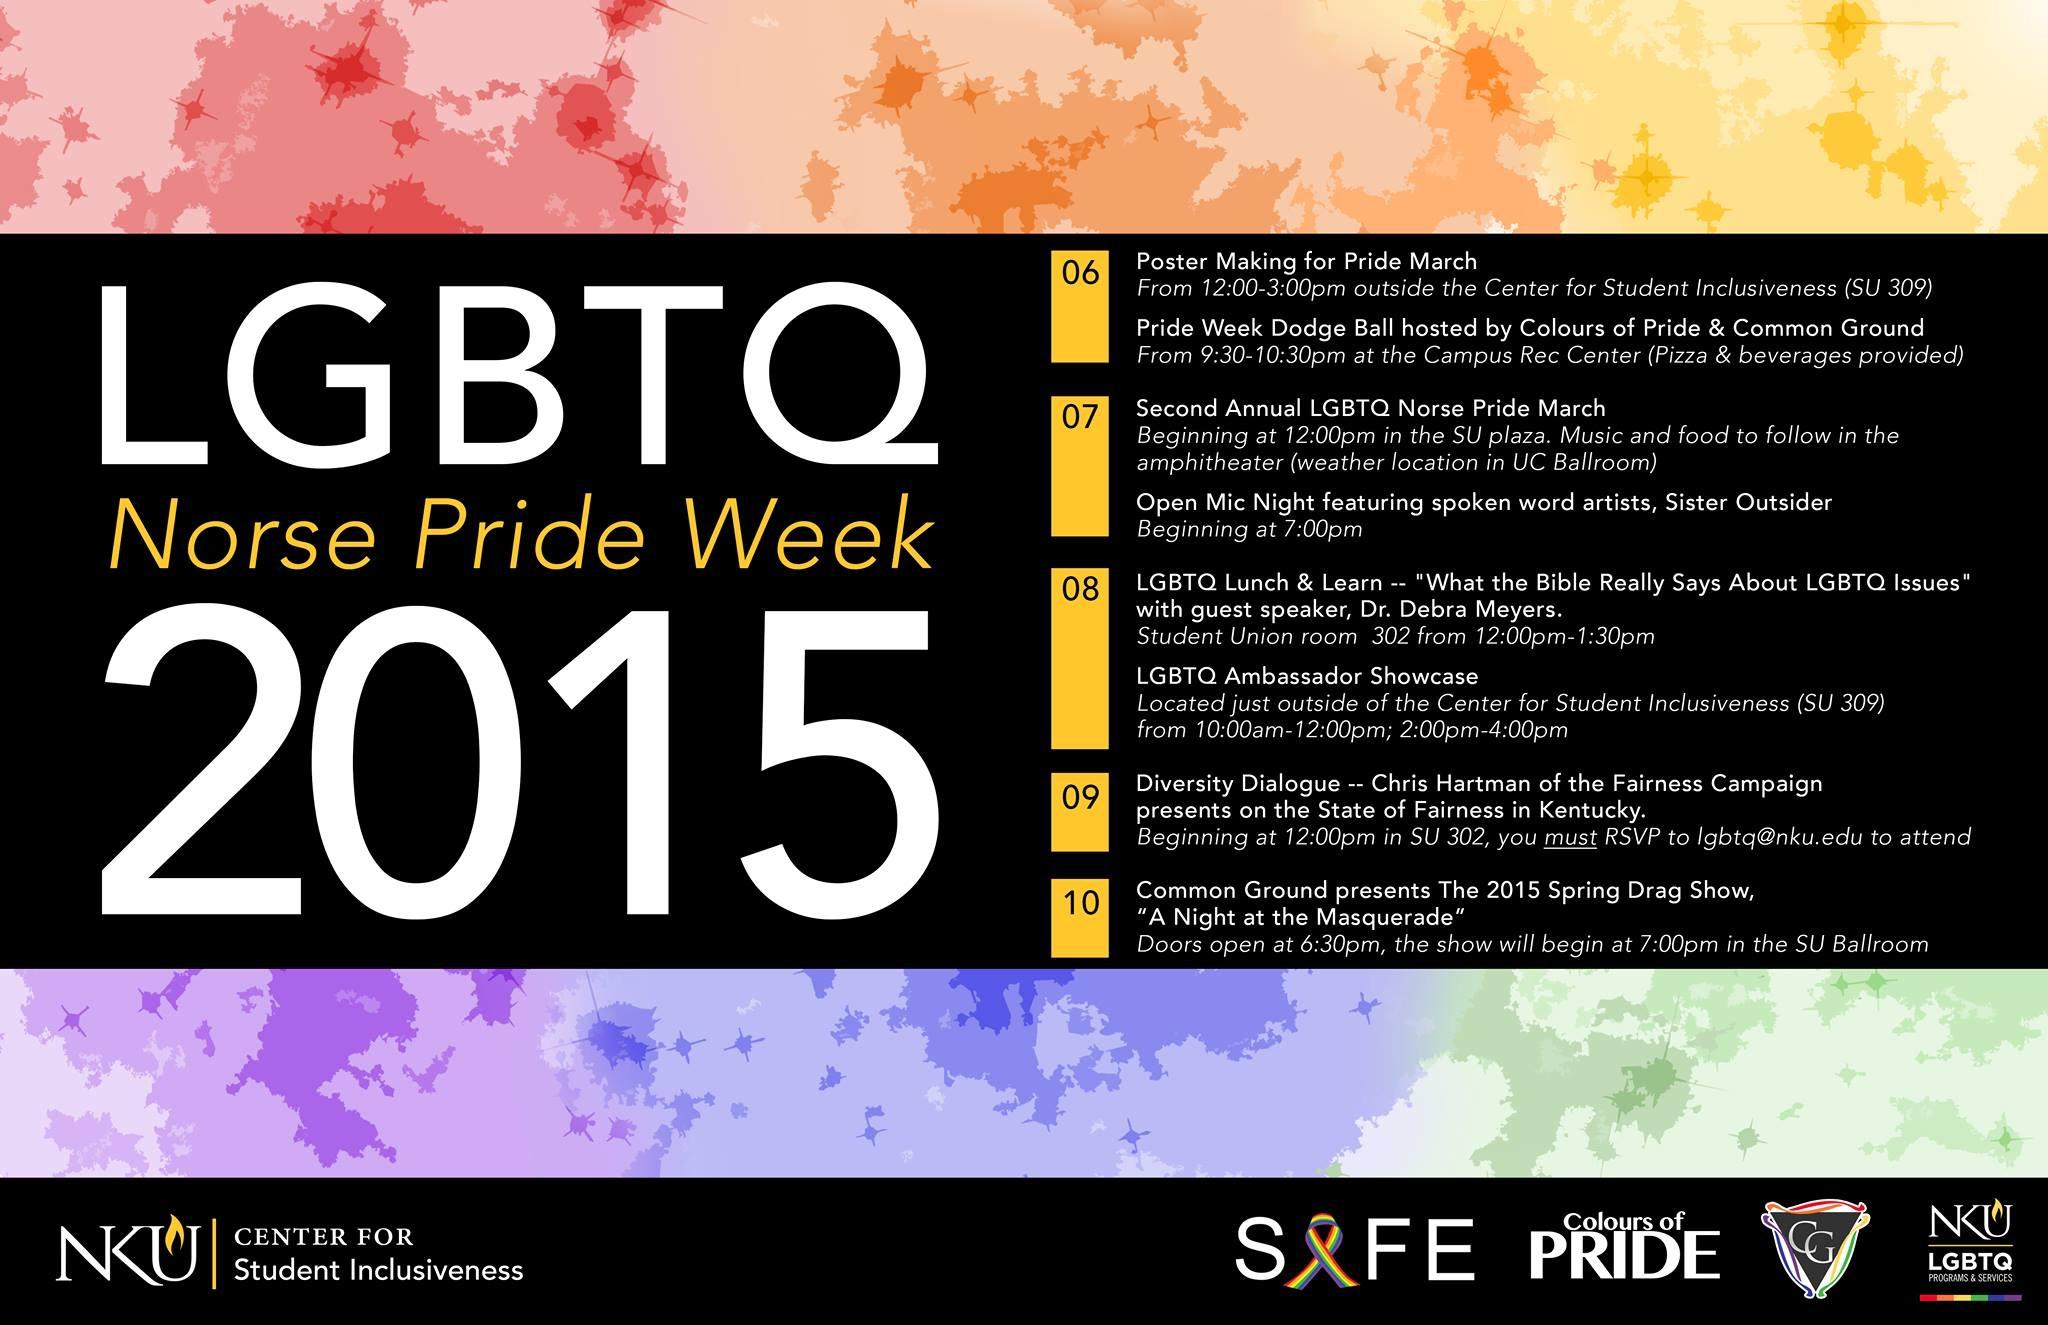 Calendar of Norse Pride Week events. All events are open to students and the community members.